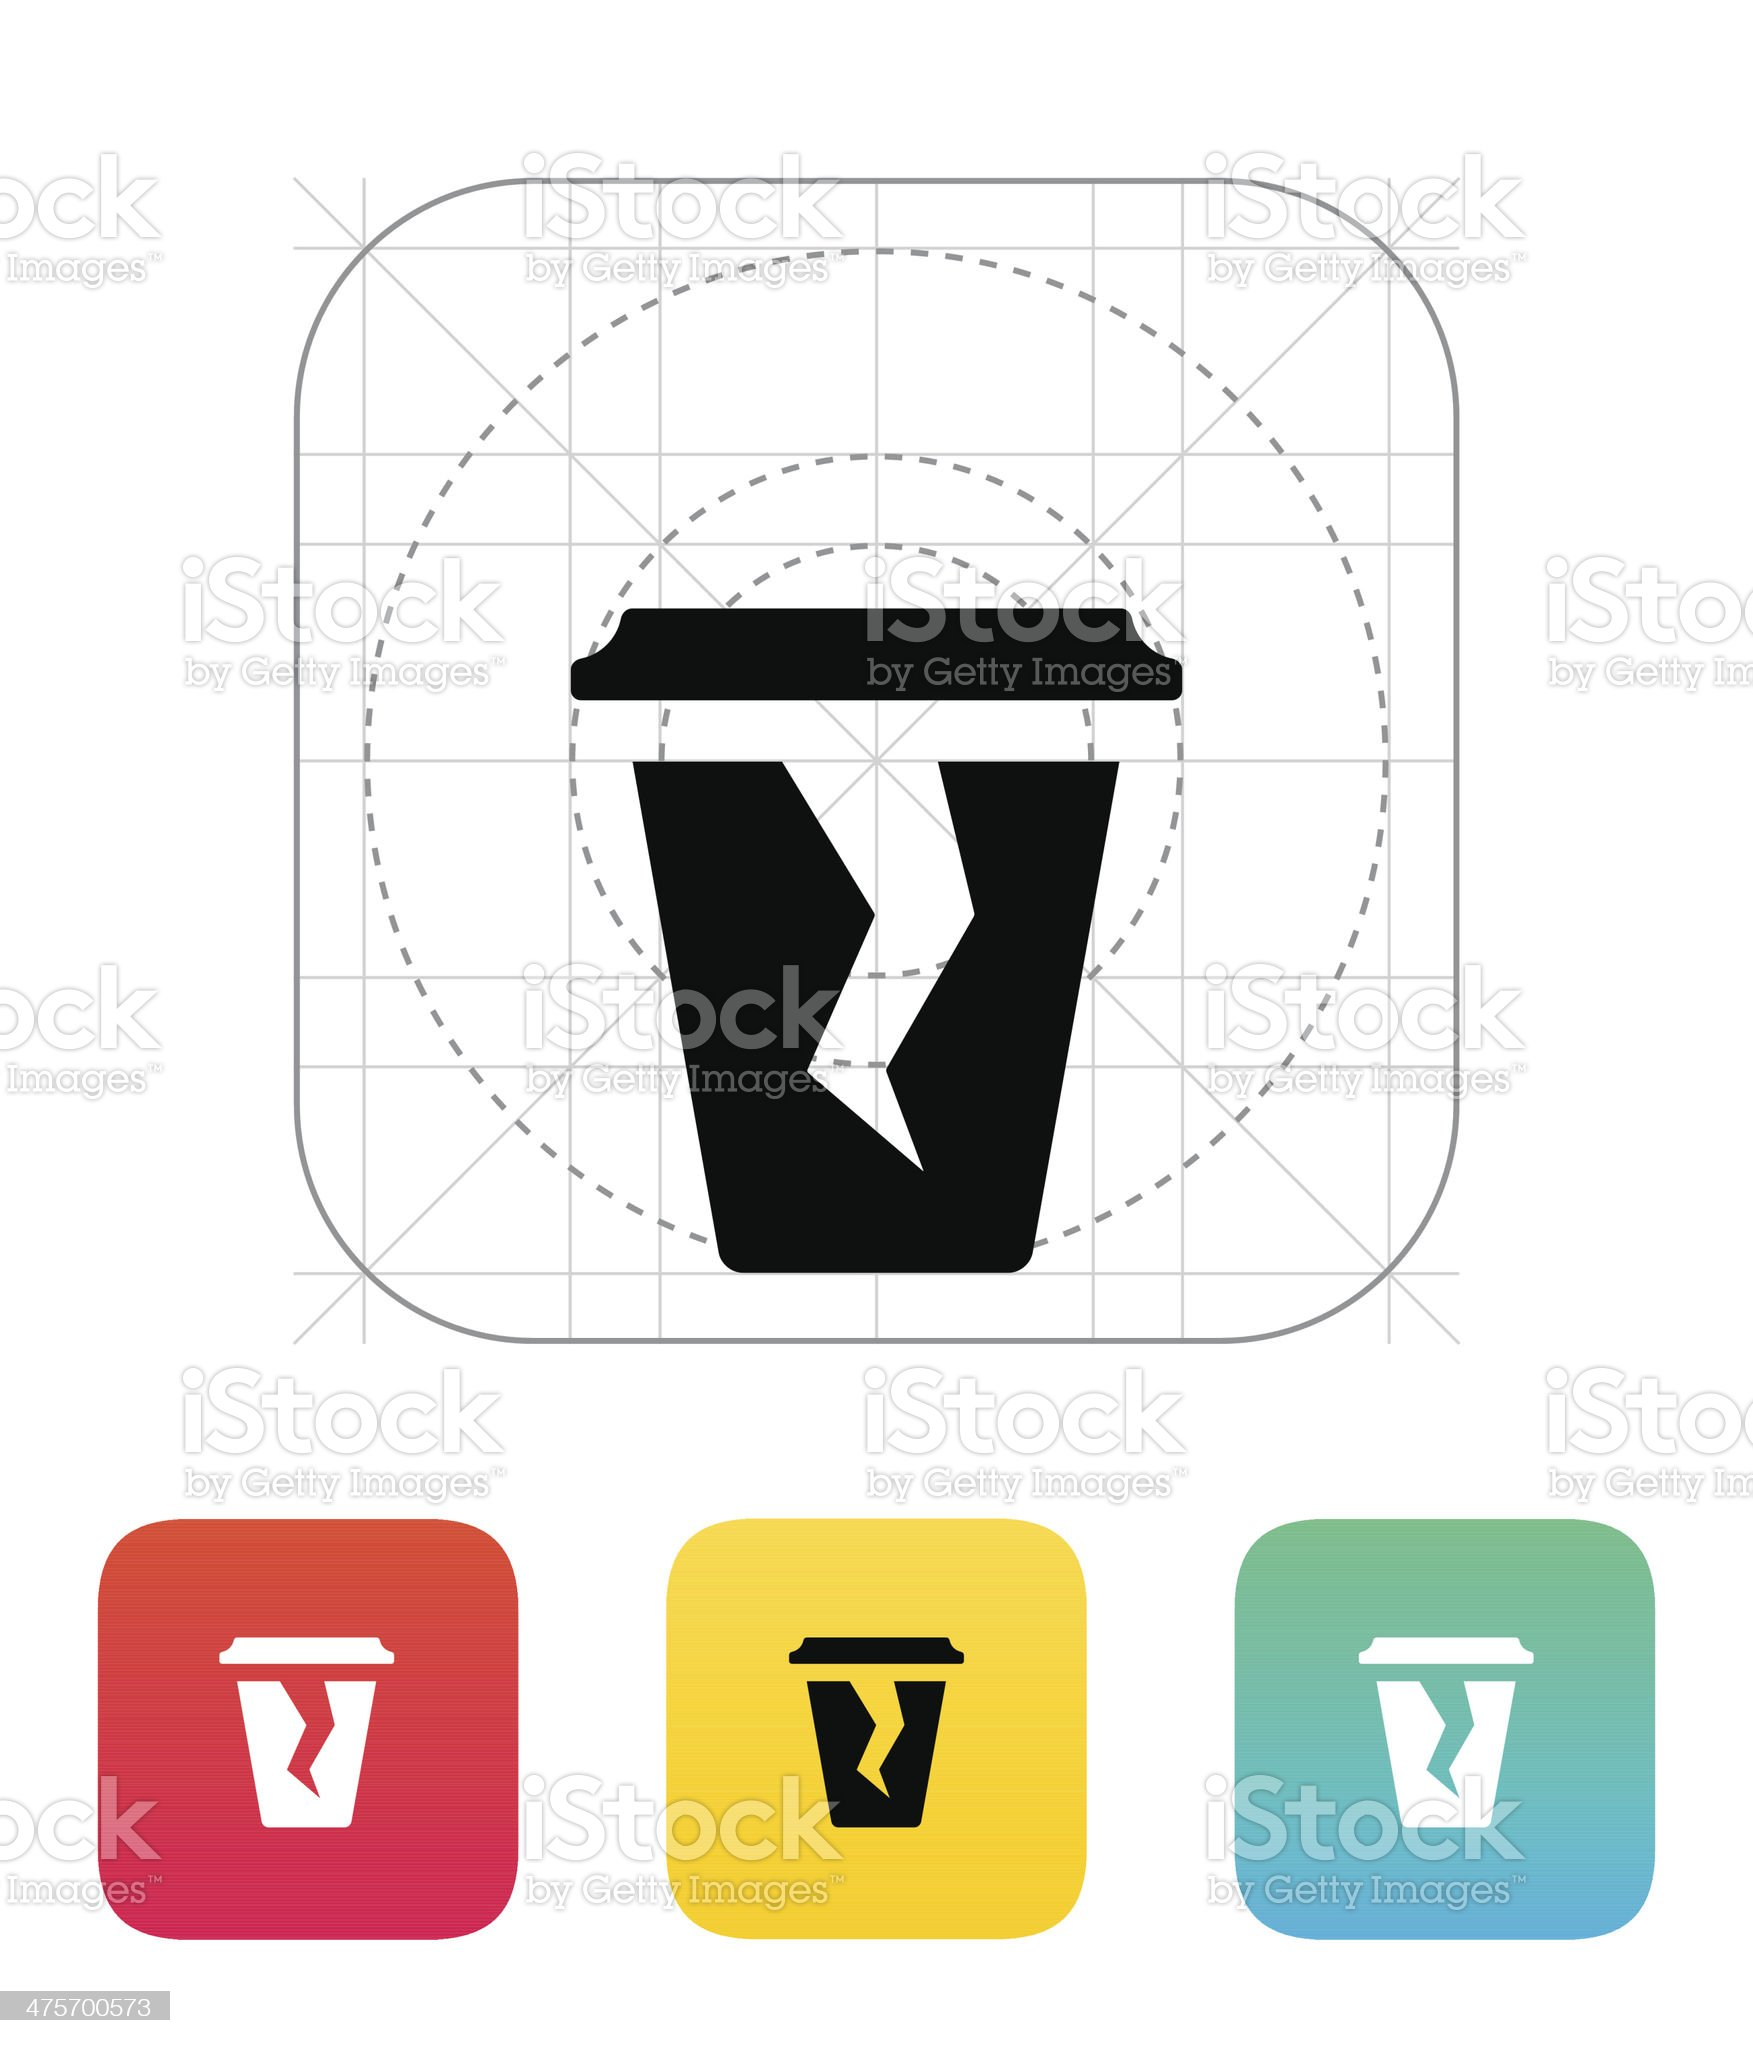 Damaged cup icon. royalty-free stock vector art